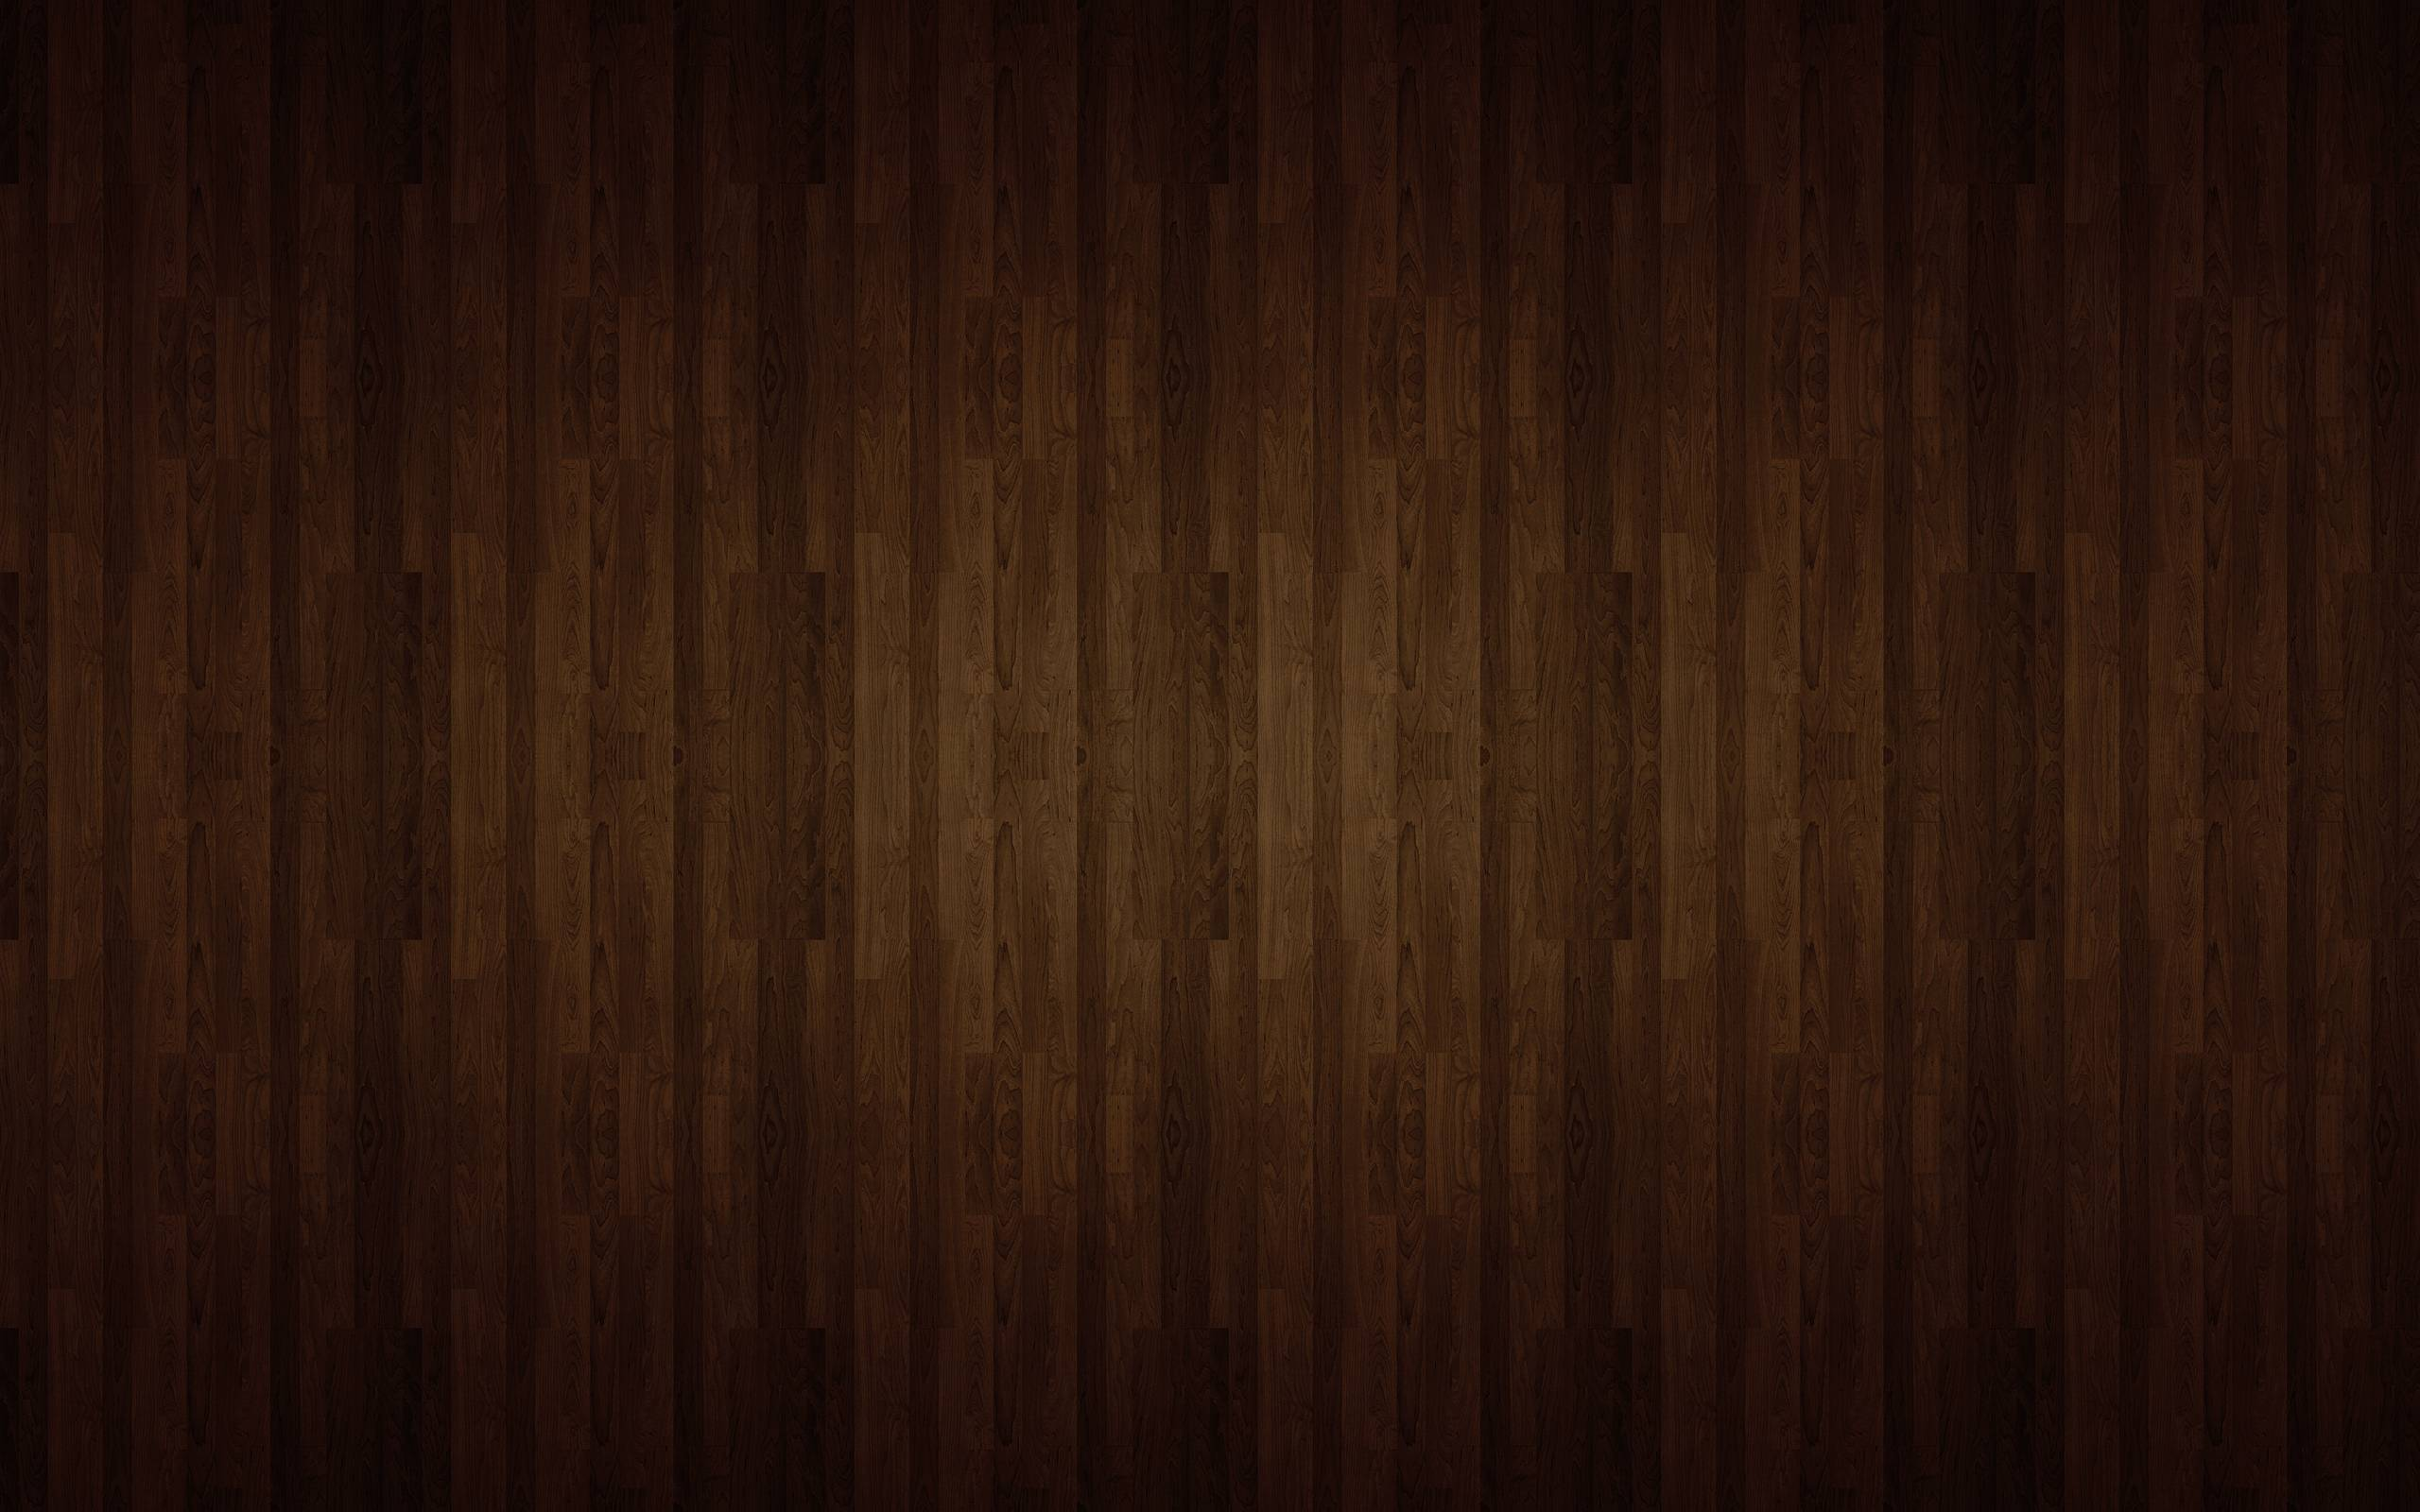 30+ HD Wood Backgrounds | Wallpapers | FreeCreatives